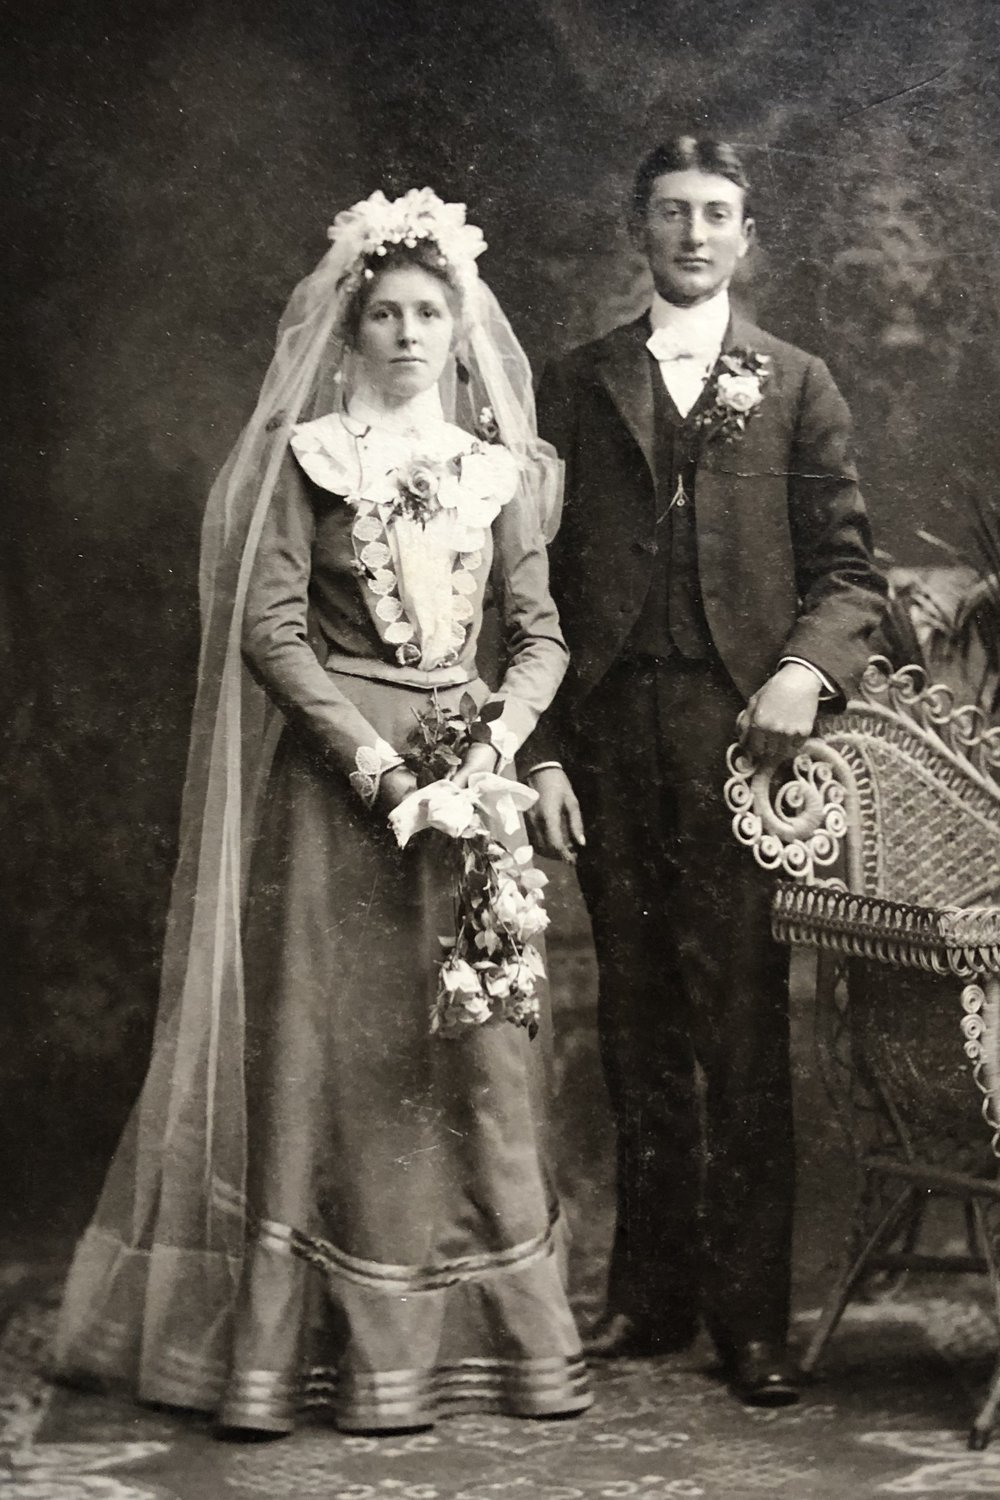 Mary+Stoppenhagen+and+Charles+Werling+Wedding+1902?format=1000w - A Household Via the A long time